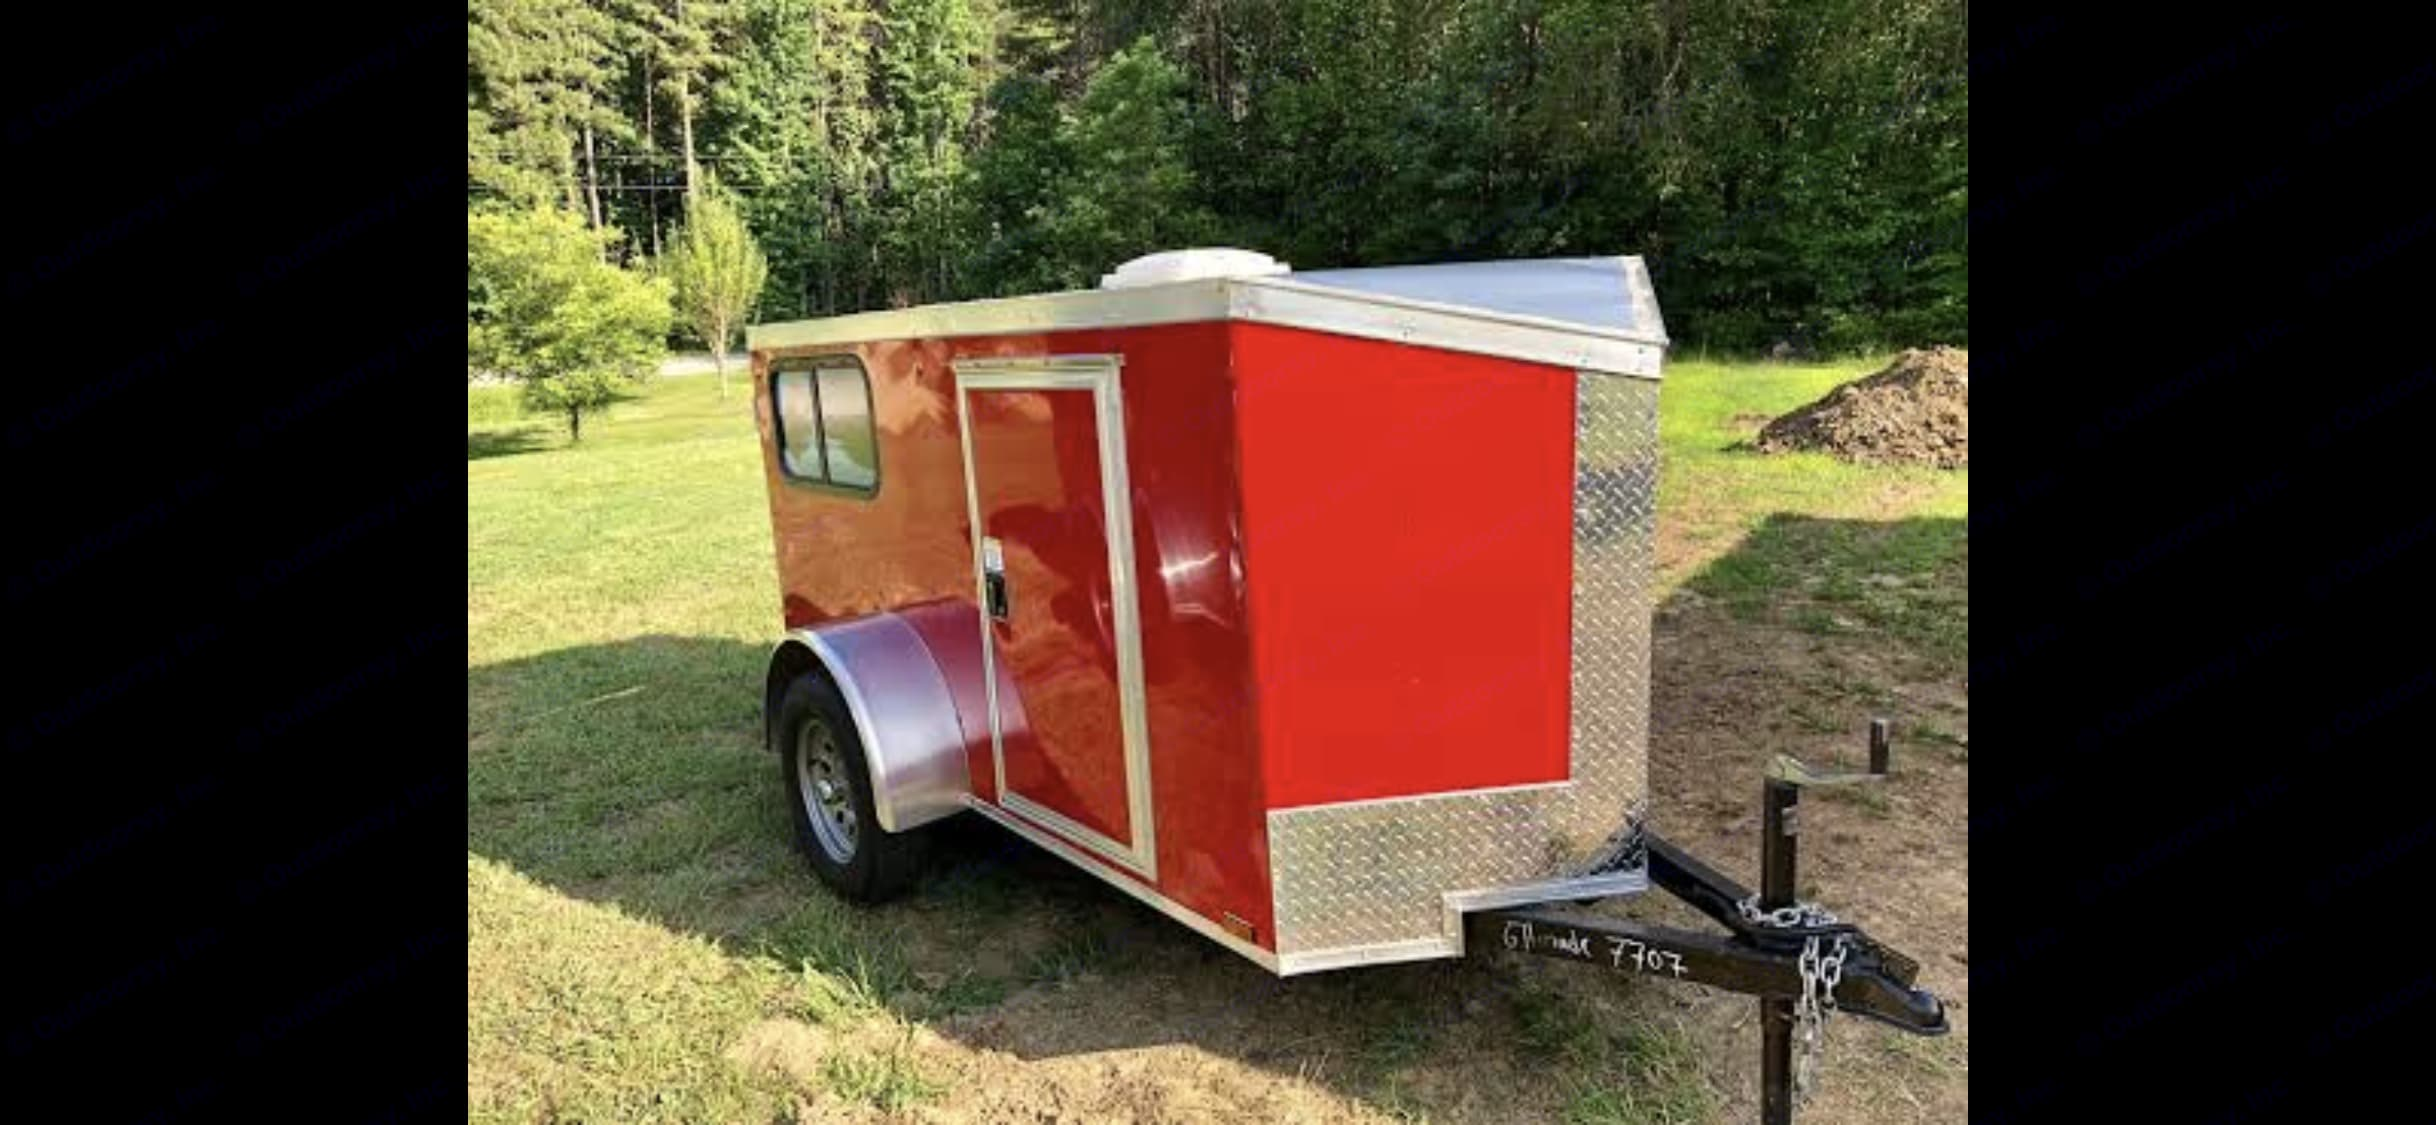 Great MPG  Weighs in at 750-800lbs. MinnowCampers none 2018